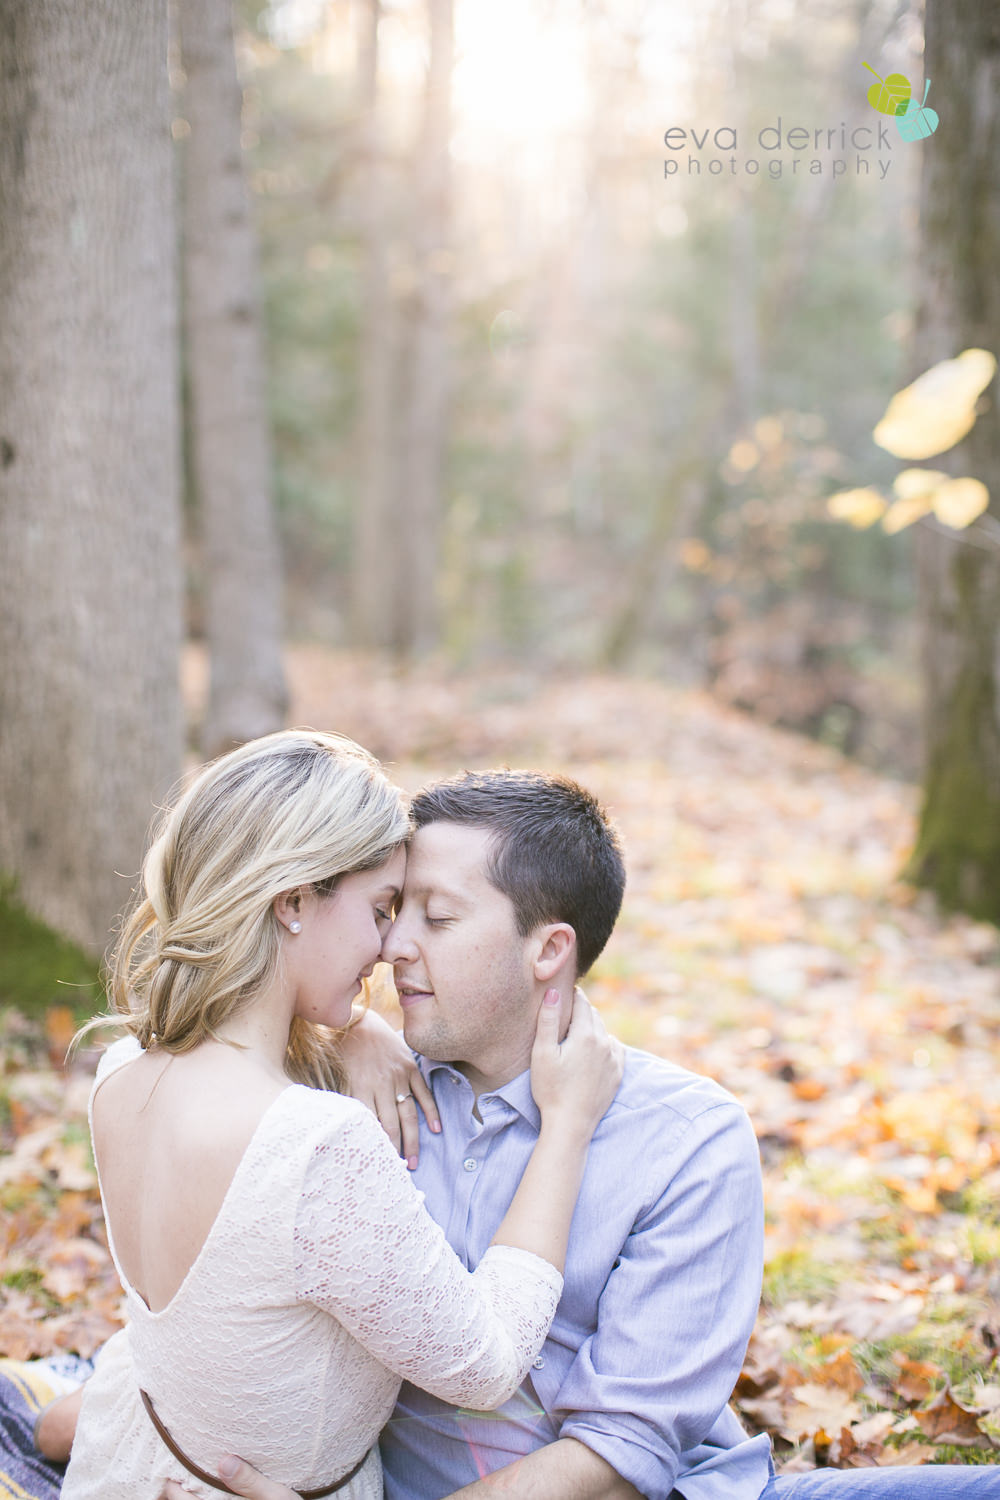 Albion-Hills-Photographer-Engagement-Session-Alanna-Matt-photography-by-Eva-Derrick-Photography-008.JPG